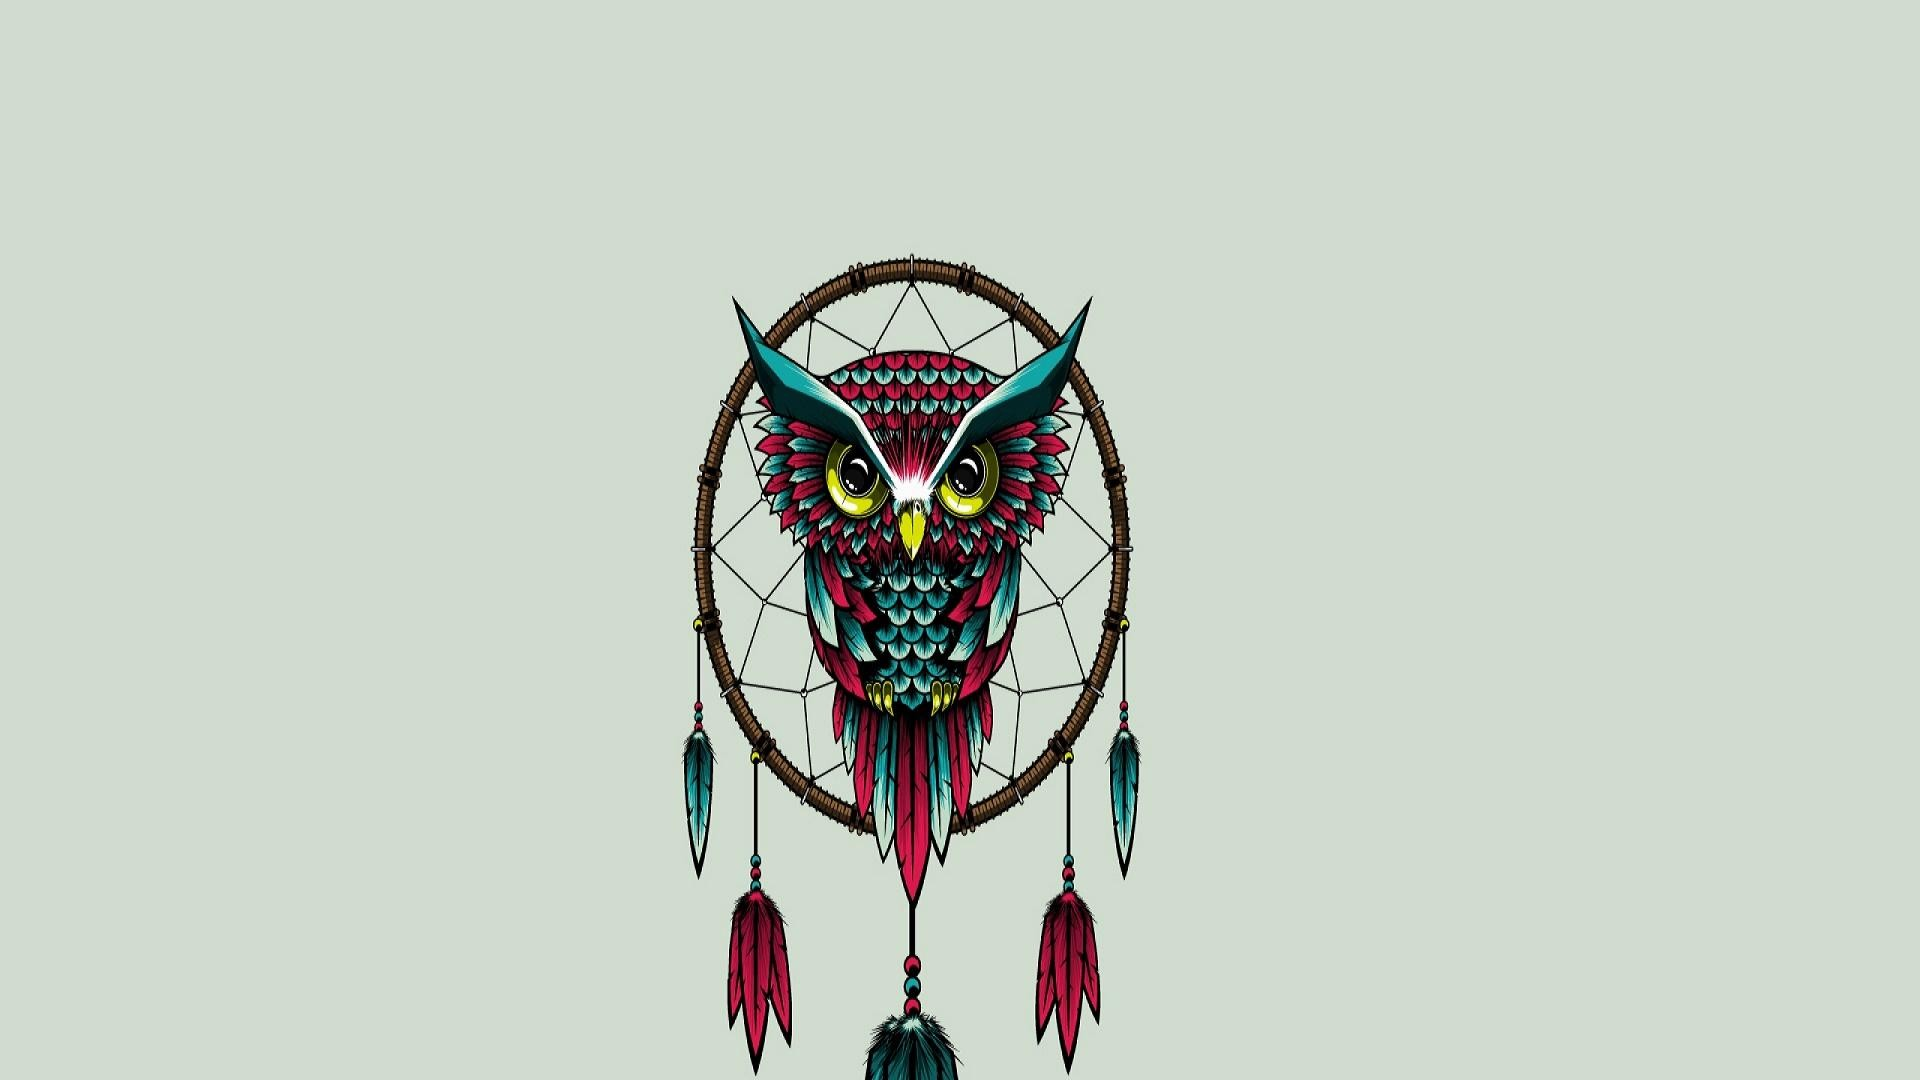 Owl-bird-dreamcatcher-art-wallpapers-hd